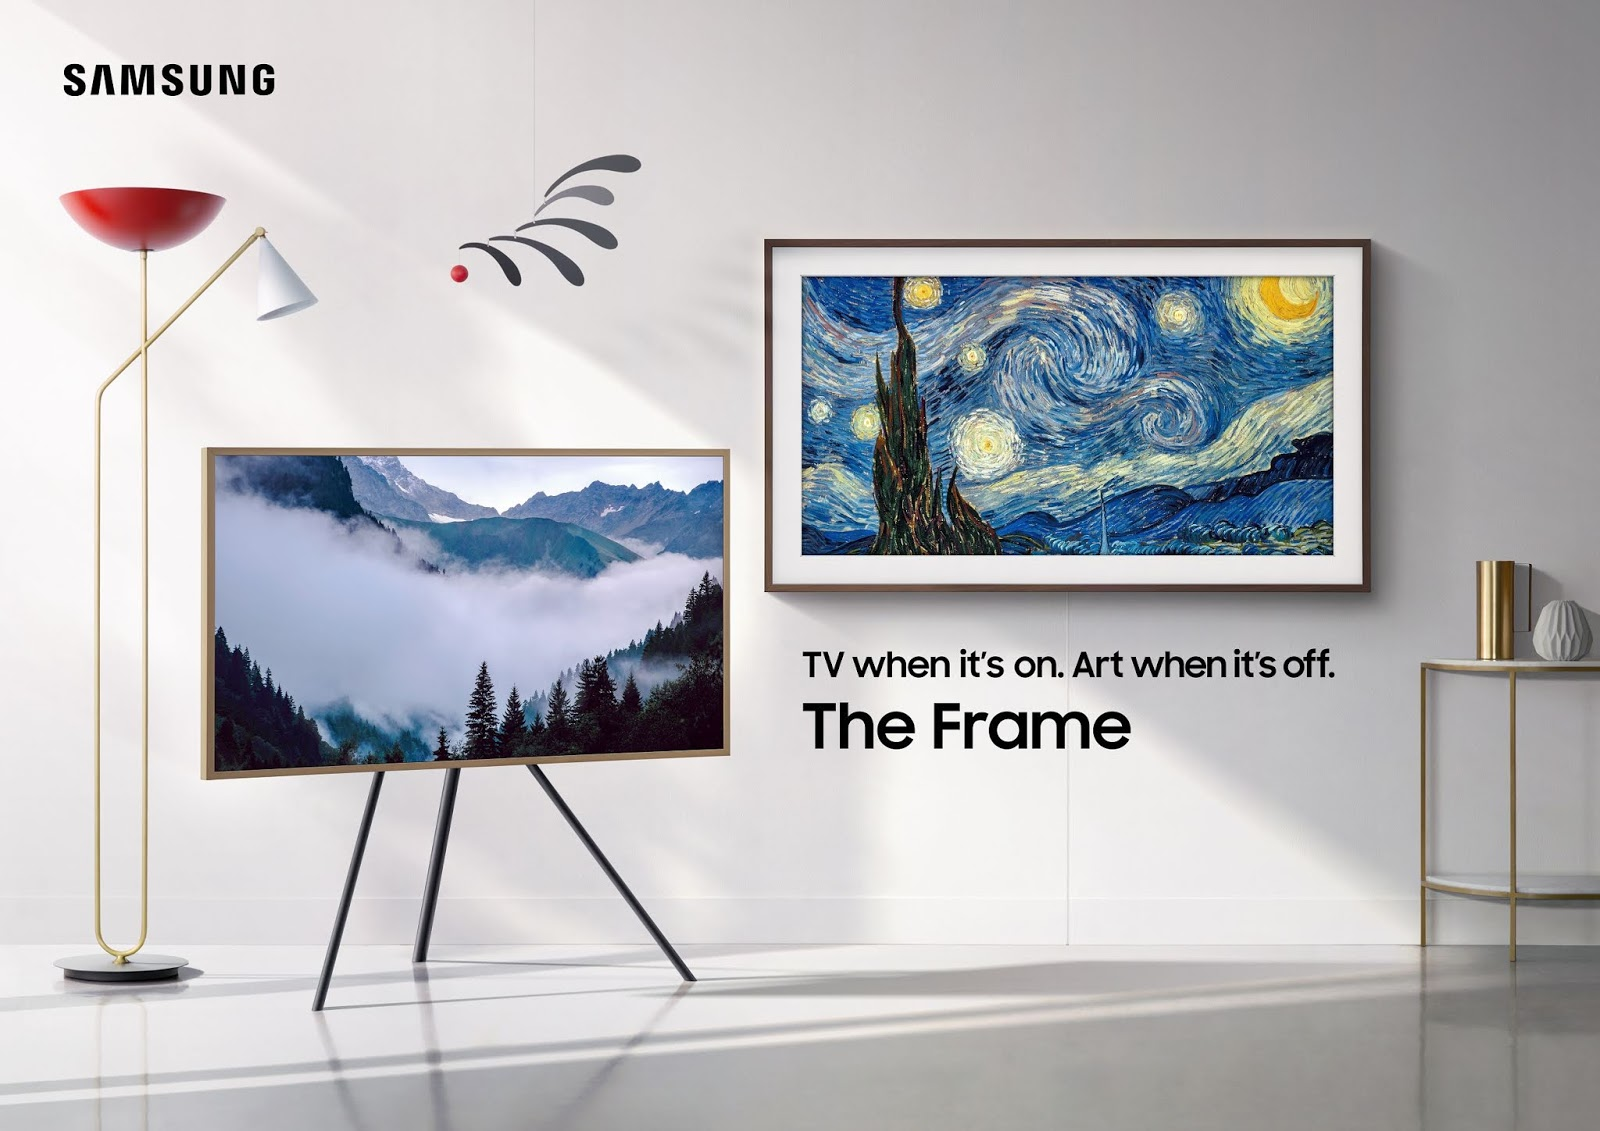 Samsung Malaysia Electronics New Lifestyle TV Series - The Sero, The Serif and The Frame.